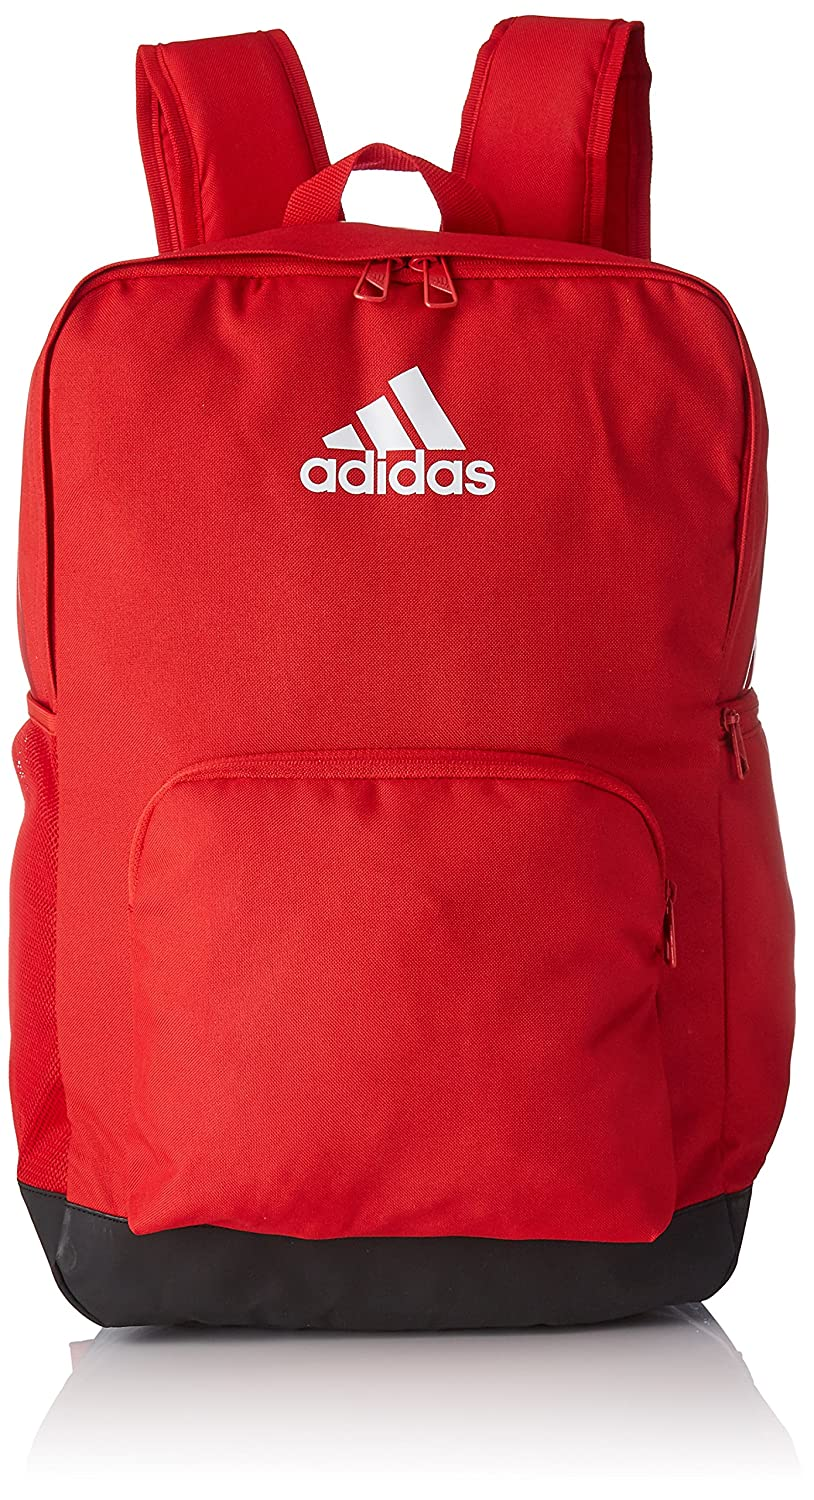 Amazon.com: Adidas Tiro Backpack (One Size, Black/Dark Grey/White): Sports & Outdoors